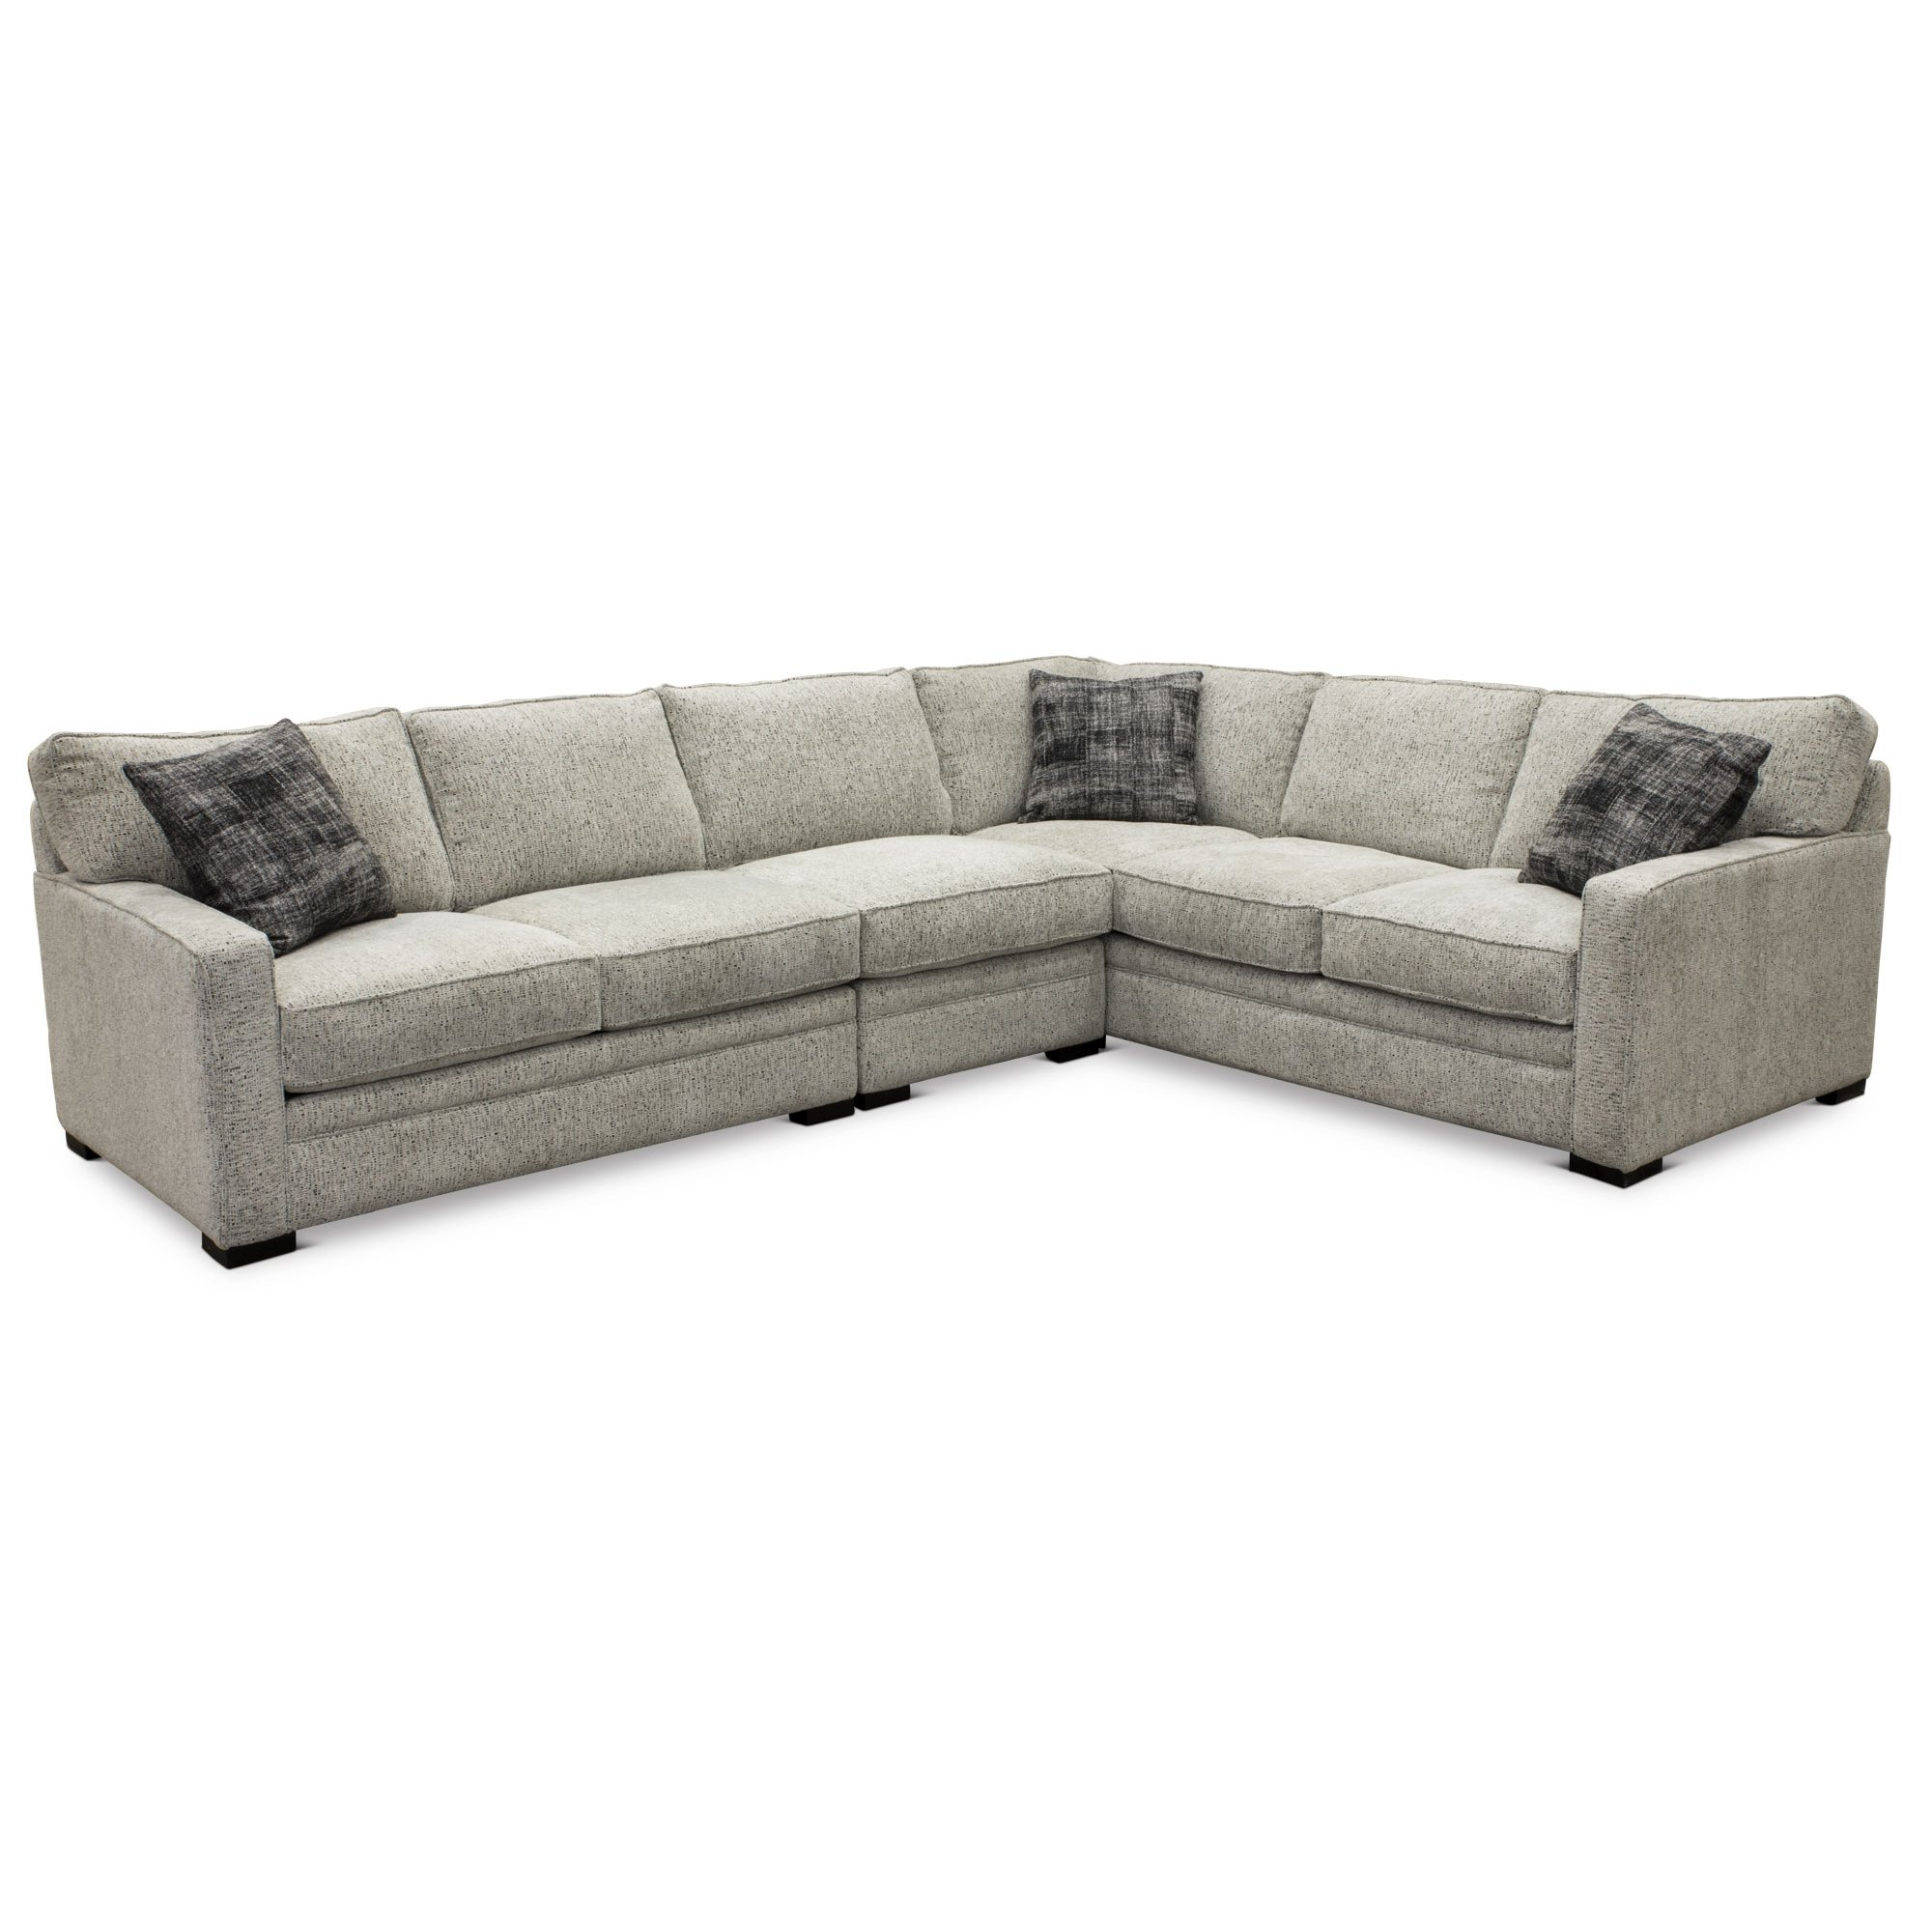 veloclub patrofi living sectional weather master sofa co belham patio willey all rc outdoor monticello wicker